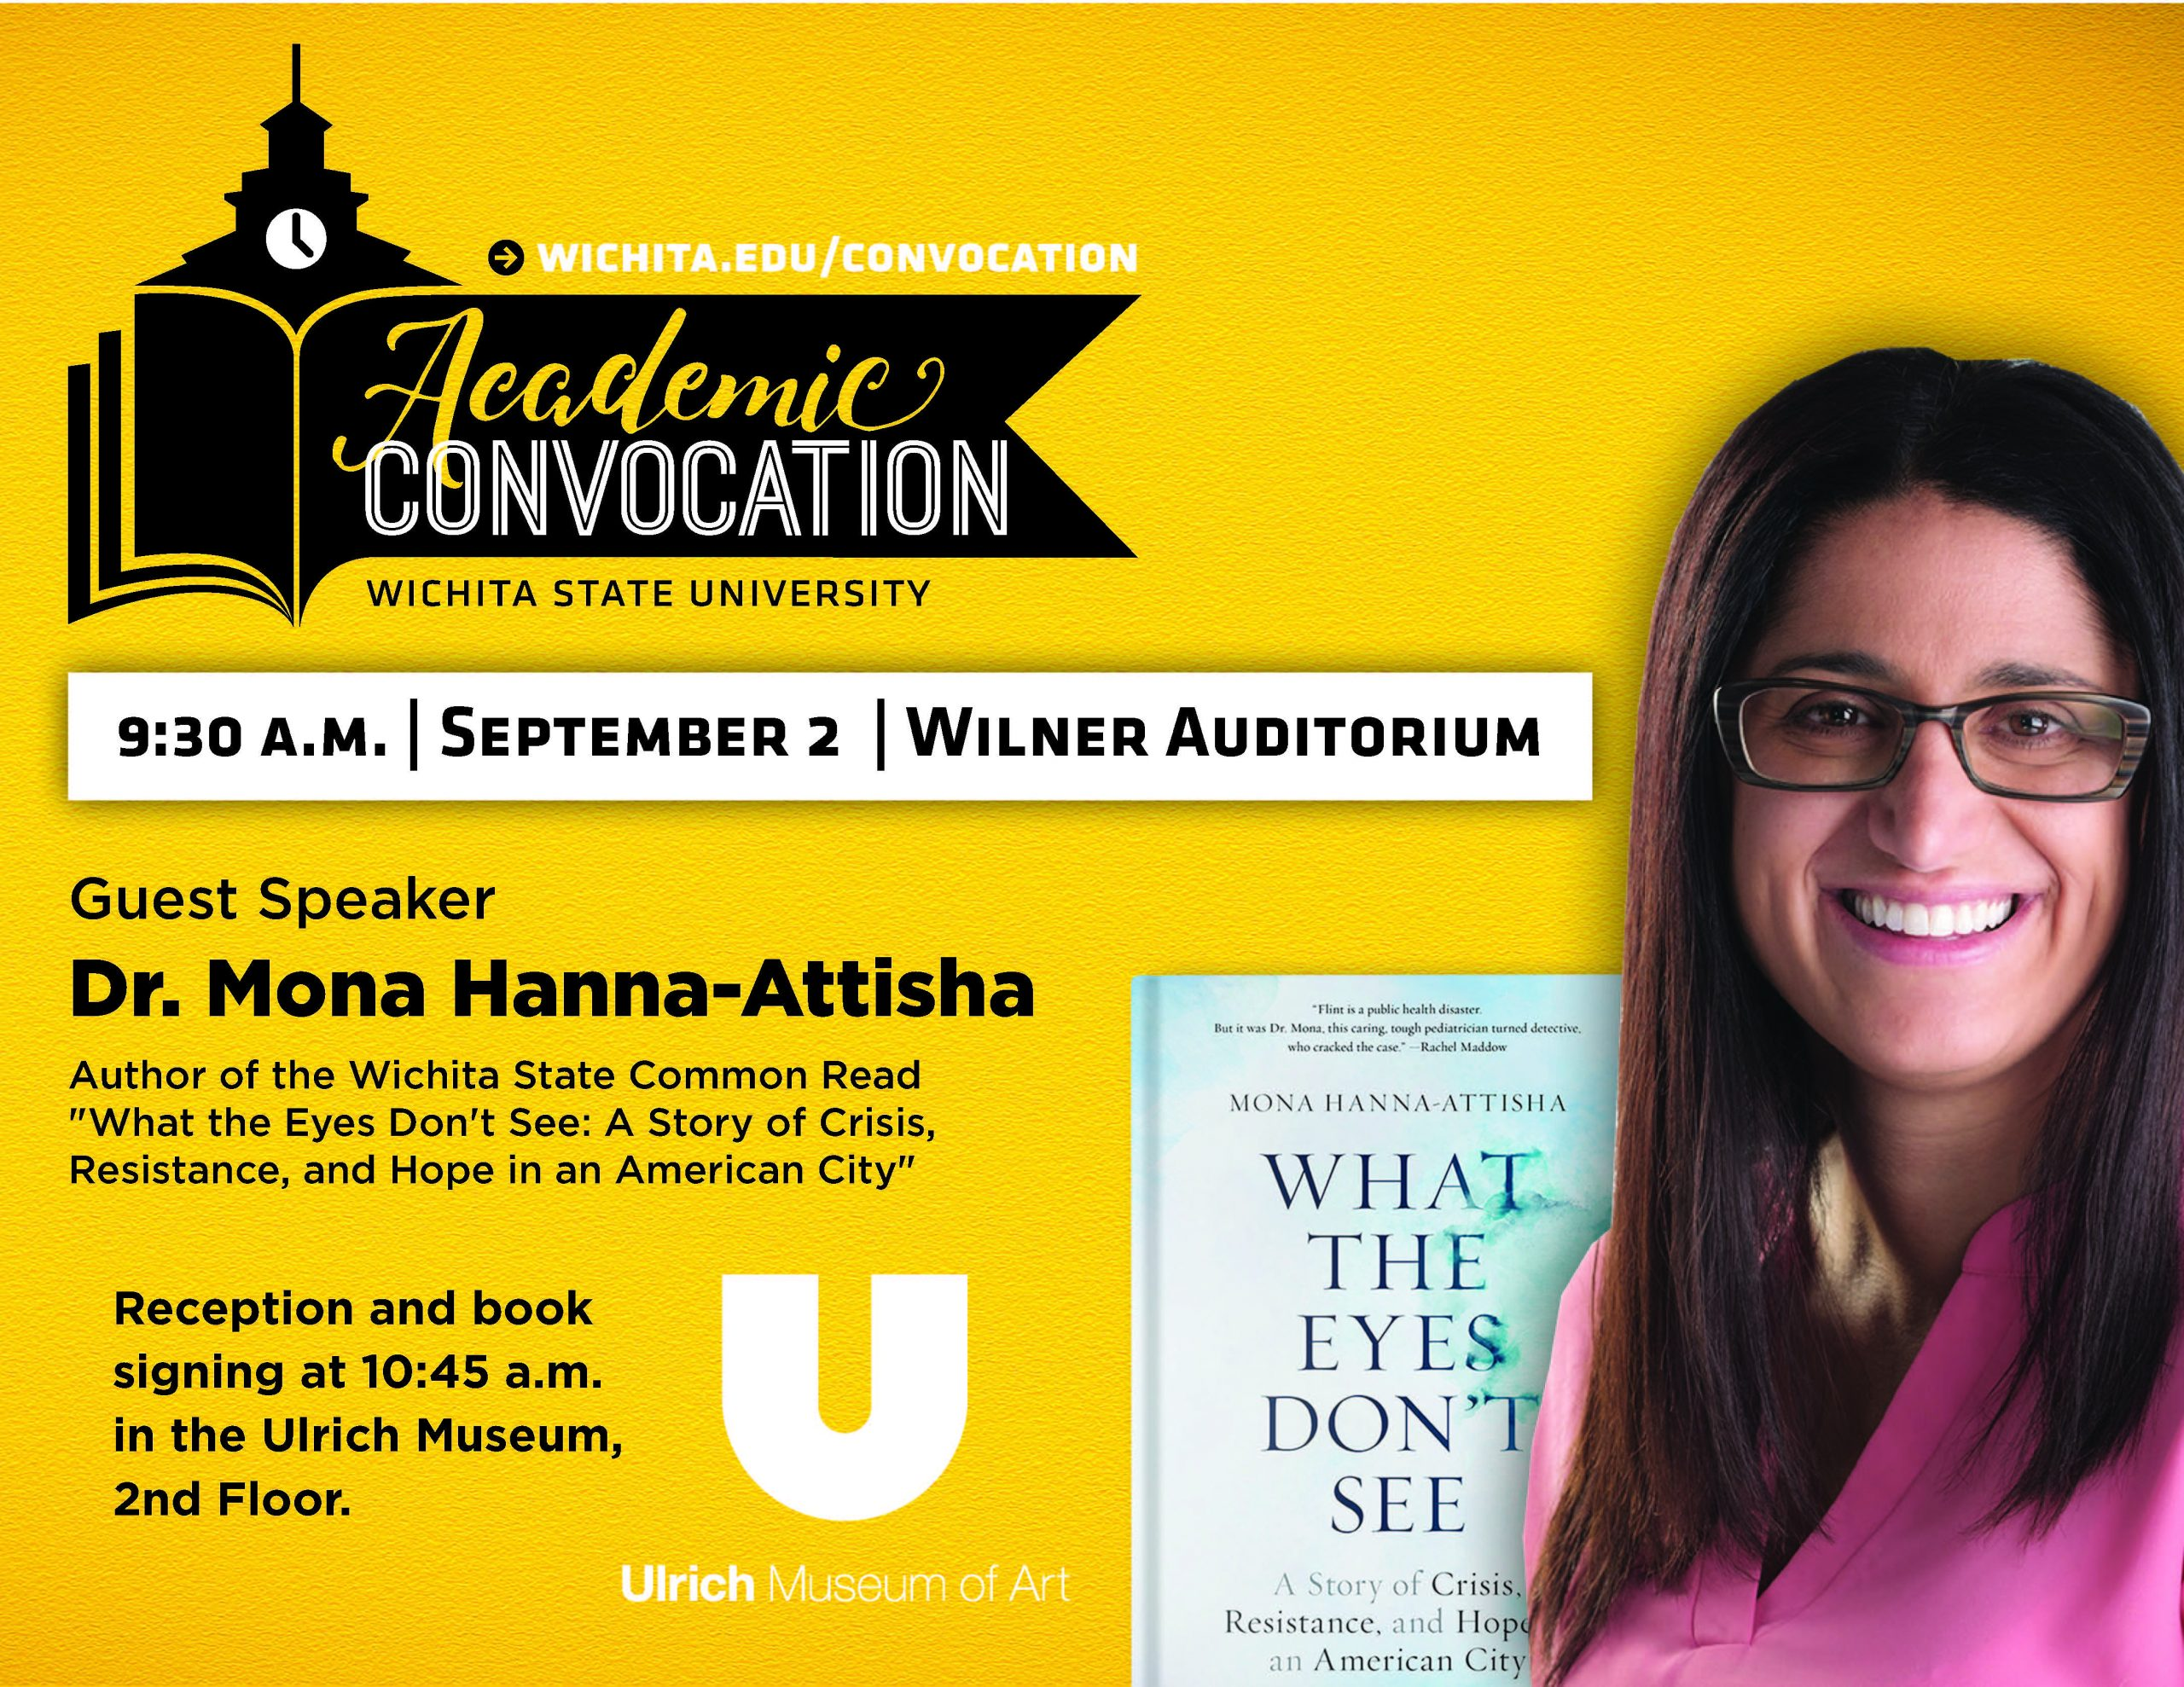 """Academic Convocation. Wichita State University. 9:30am September 2 Wilner Auditorium. Guest Speaker Dr. Mona Hanna-Attisha. Author of the Wichita State Common Read """"What the Eyes Don't See: A Story of Crisis, Resistance, and Hope in an American City."""" Reception and book signing at 10:45am in the Ulrich Museum, second floor. Ulrich Museum of Art. Visit wichita.edu/convocation."""